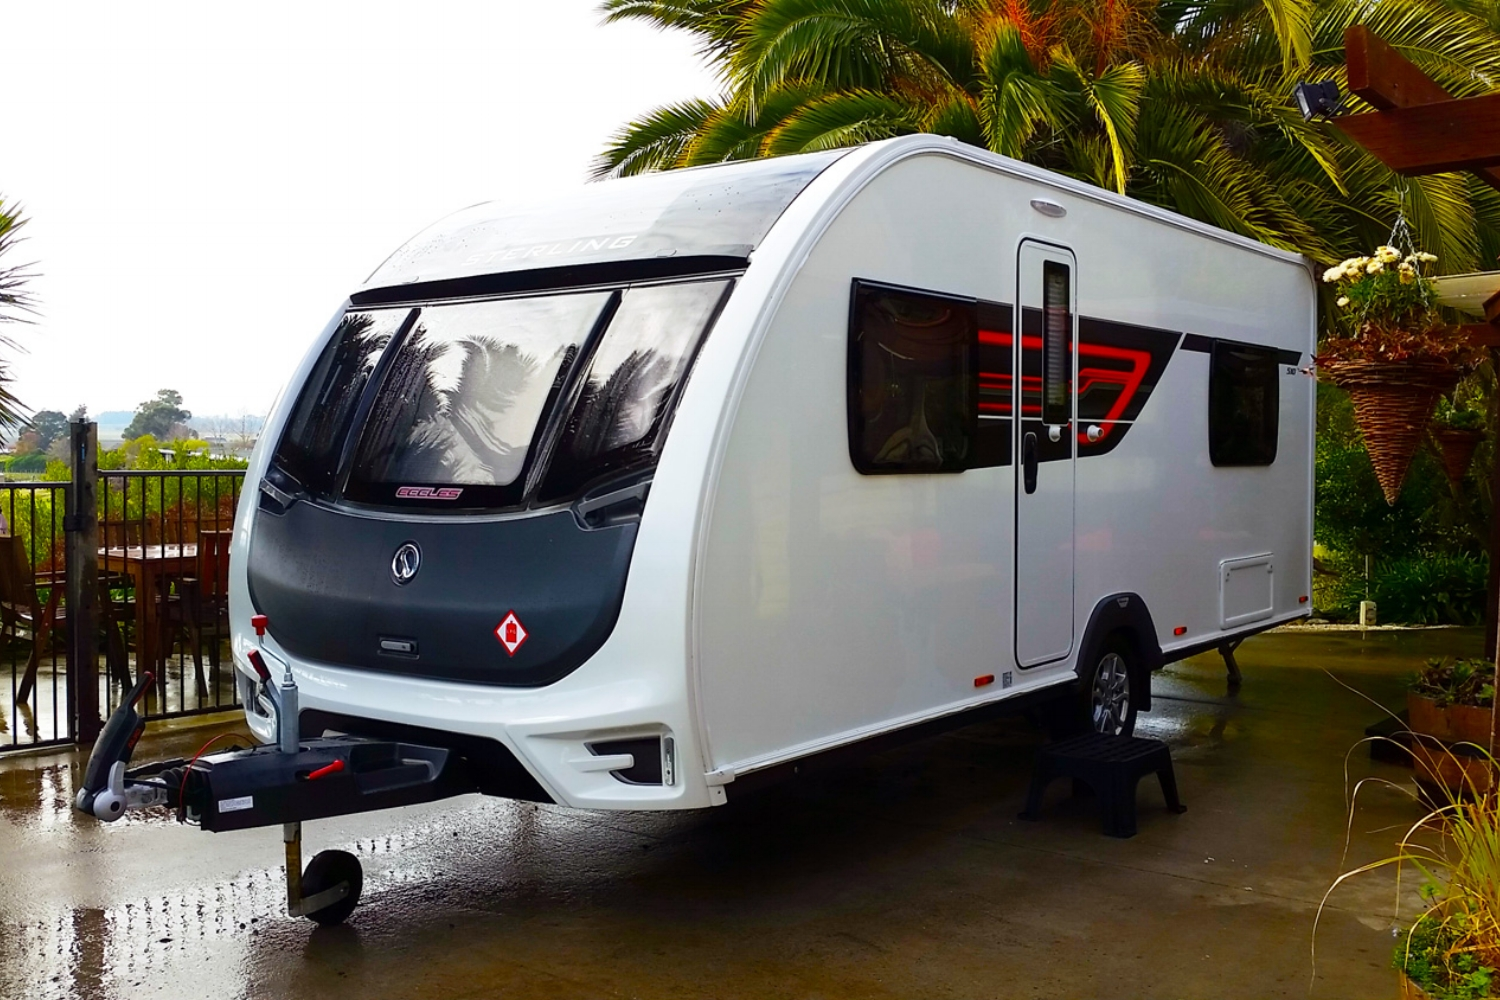 Caravans and Motorhomes - We recommend and aim to purchase caravans less than 10 years old from the UK.  The best value and biggest savings are normally on brand new caravans where we are able to by VAT free before exporting to New Zealand